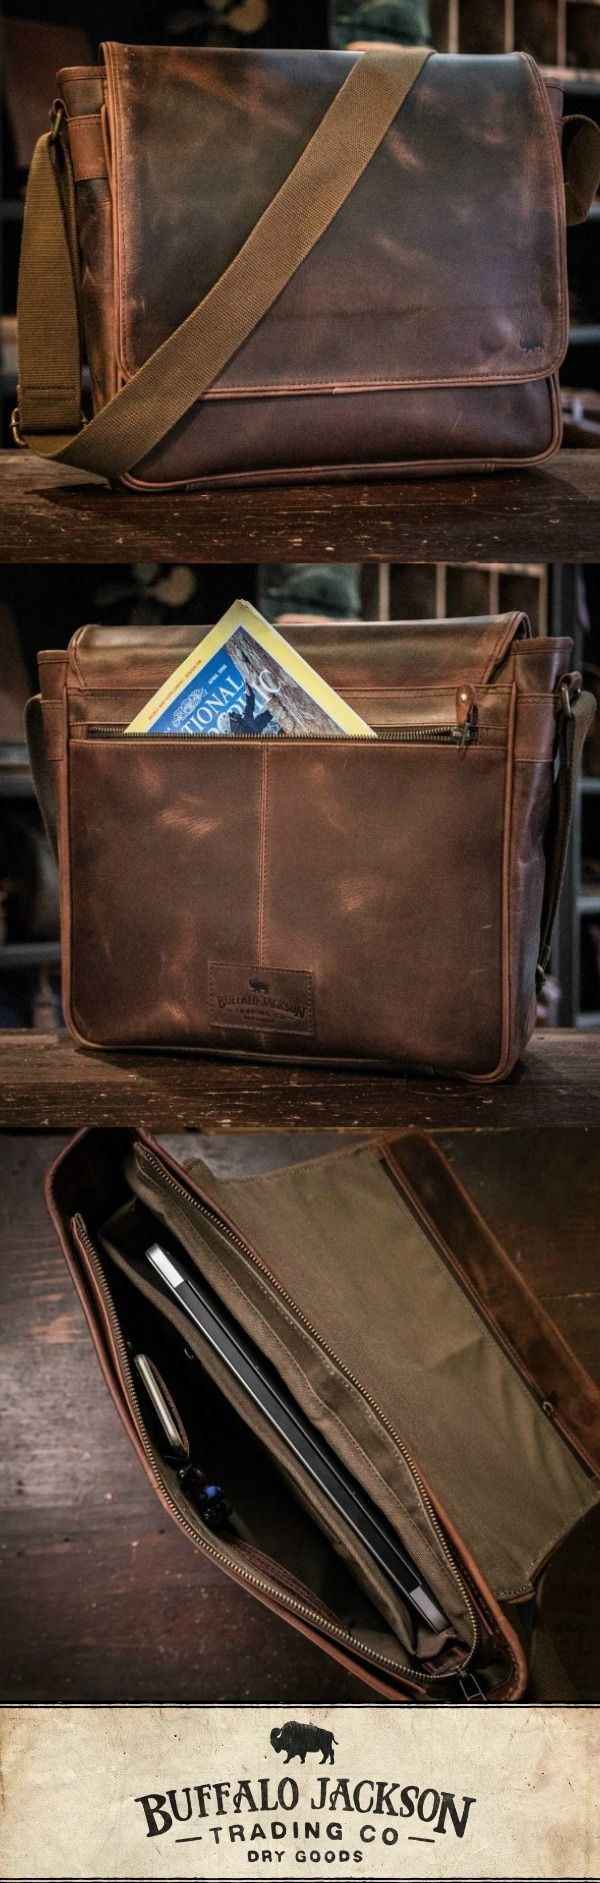 Men's vintage dark brown leather satchel messenger bag. Handcrafted to handle whatever you throw at it - work, travel, or adventure. This just-right, not-too-bulky size will fit up to 15-inch laptops. Adjustable canvas shoulder strap for wearing cross body and casual. You want fashion? Louis Vuitton, Michael Kors, & Hermes (or Coach or Gucci or Prada…), ain't got nothin on us. Rugged craftsmanship for the win. Great gift for him.